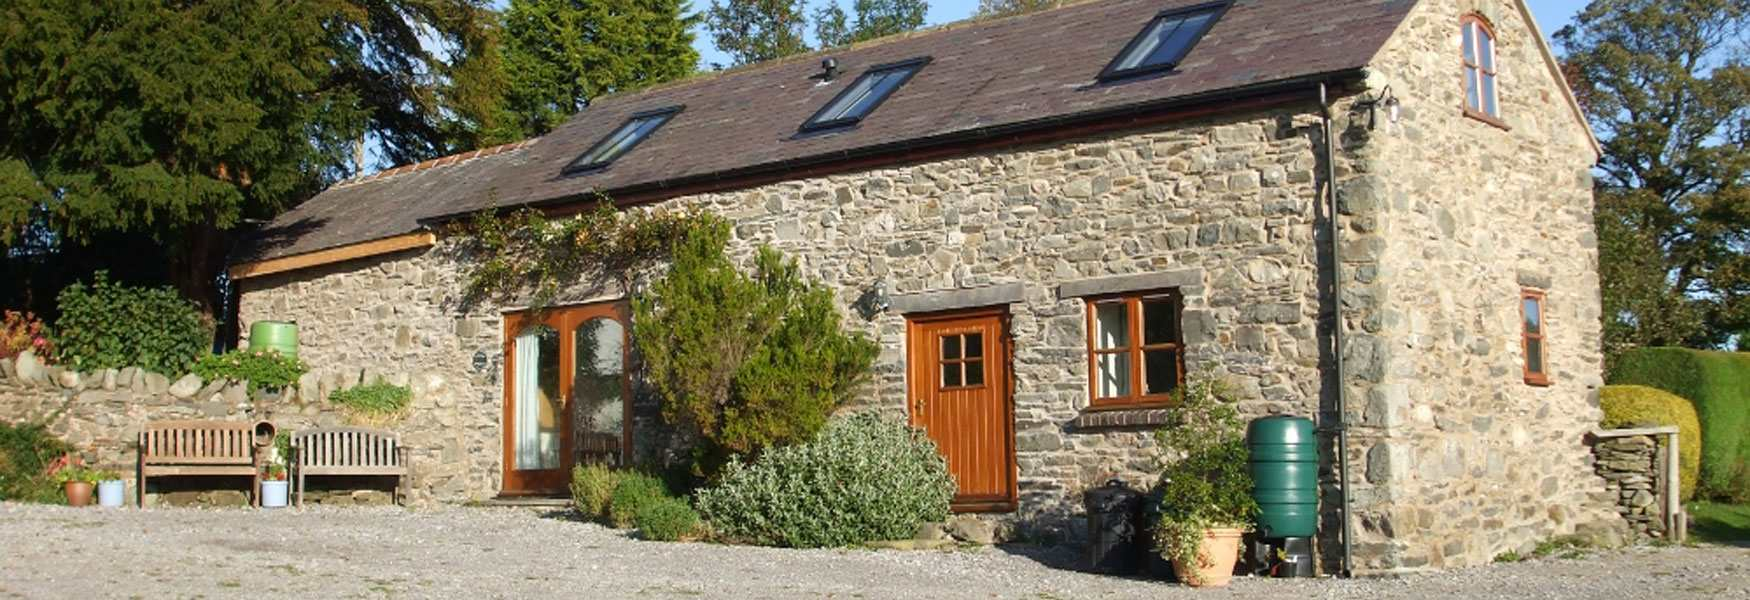 Holidays cottages in north wales for Up north cottages